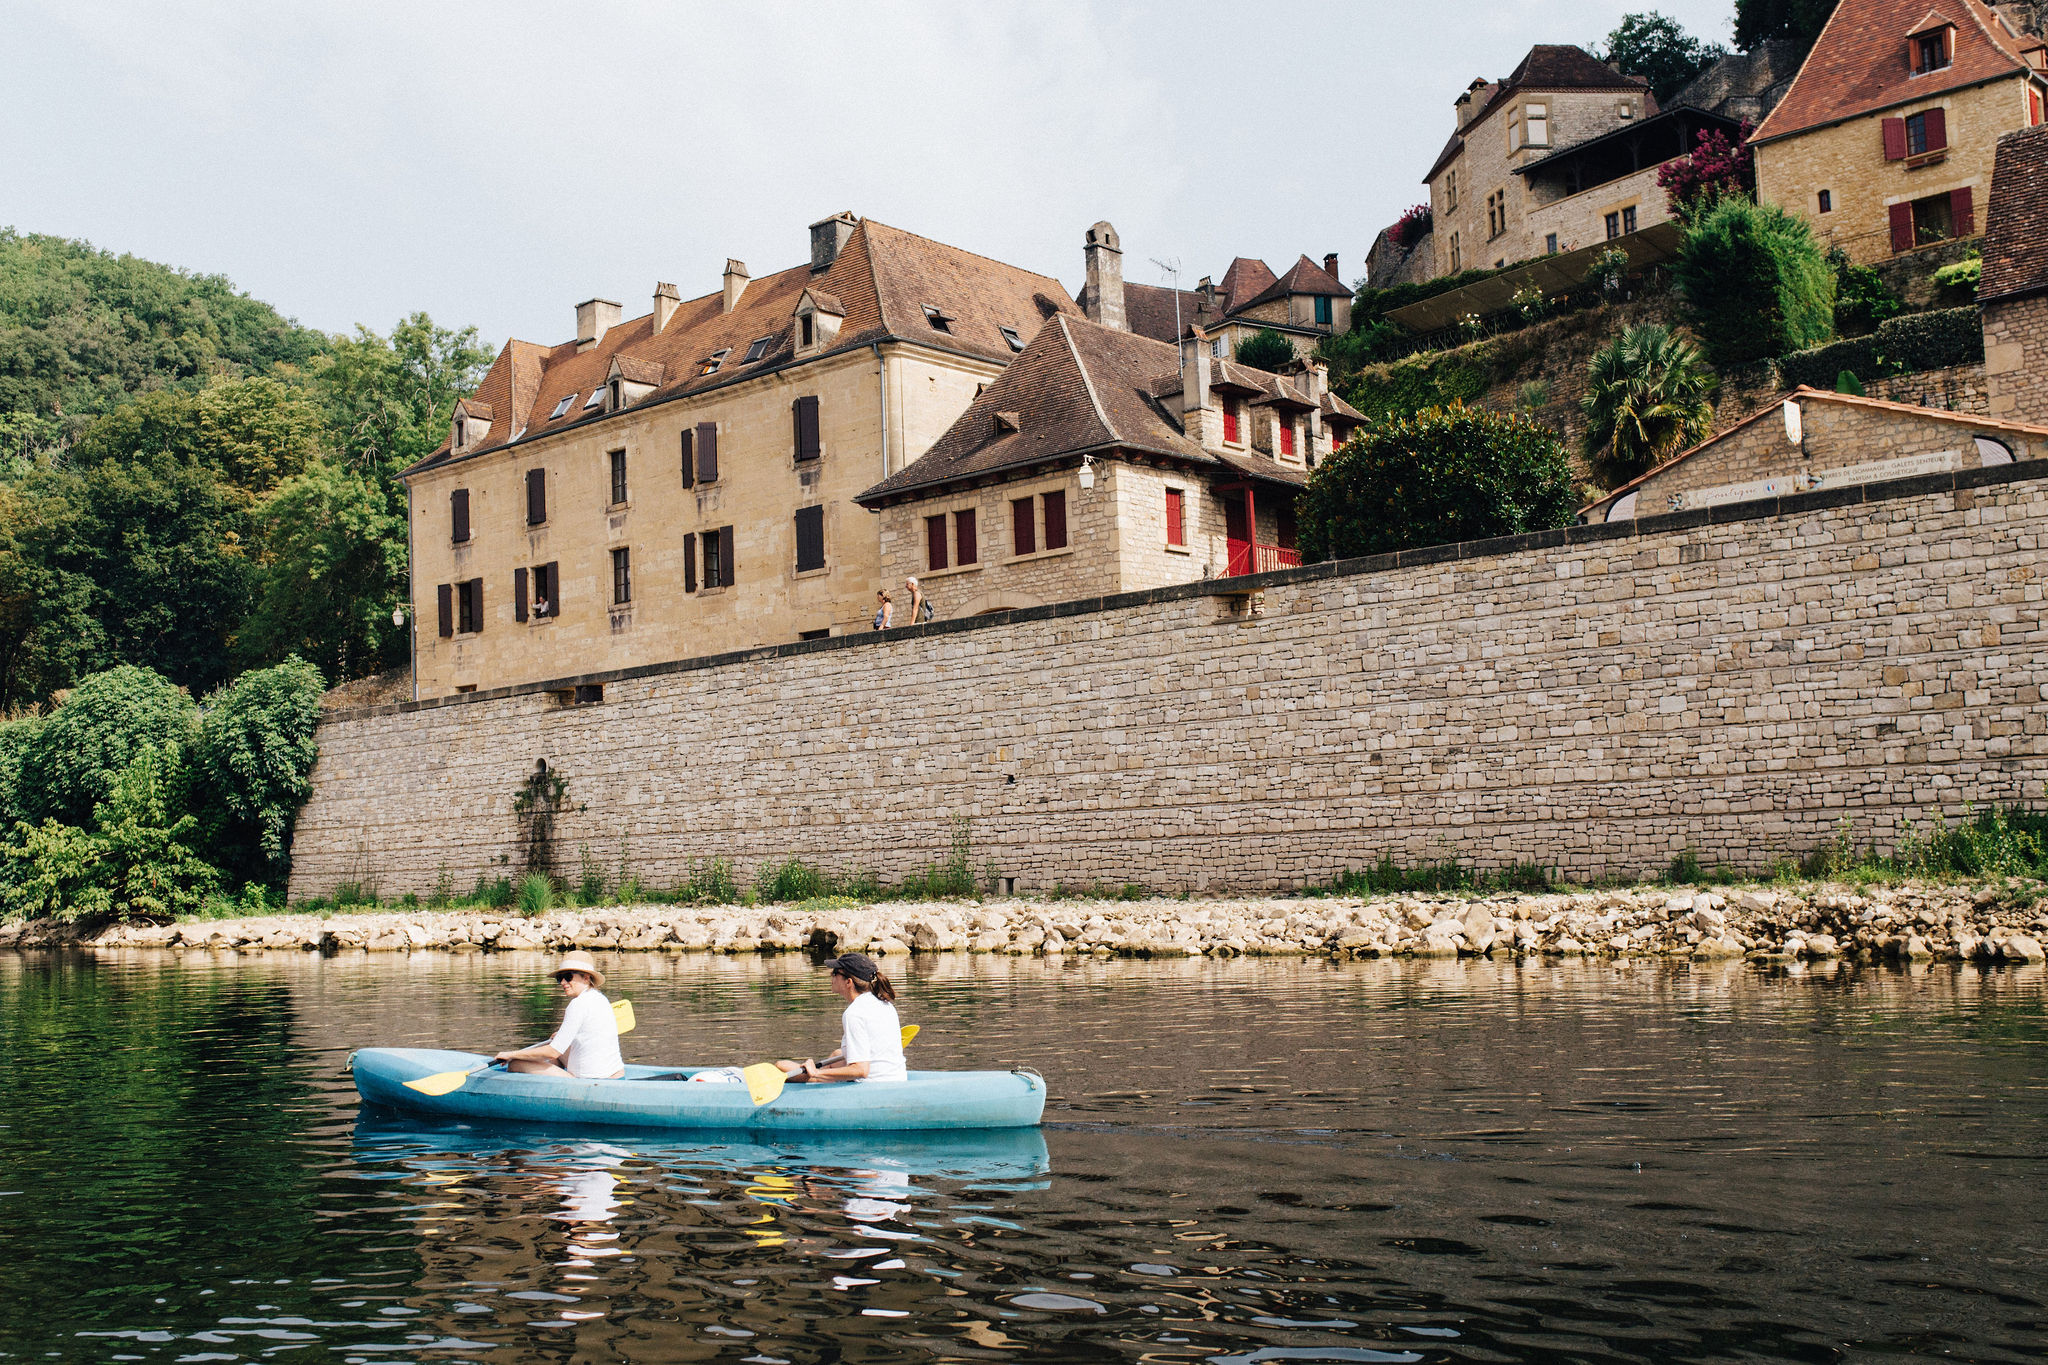 Canoe on Dordogne river at La Roque-Gageac